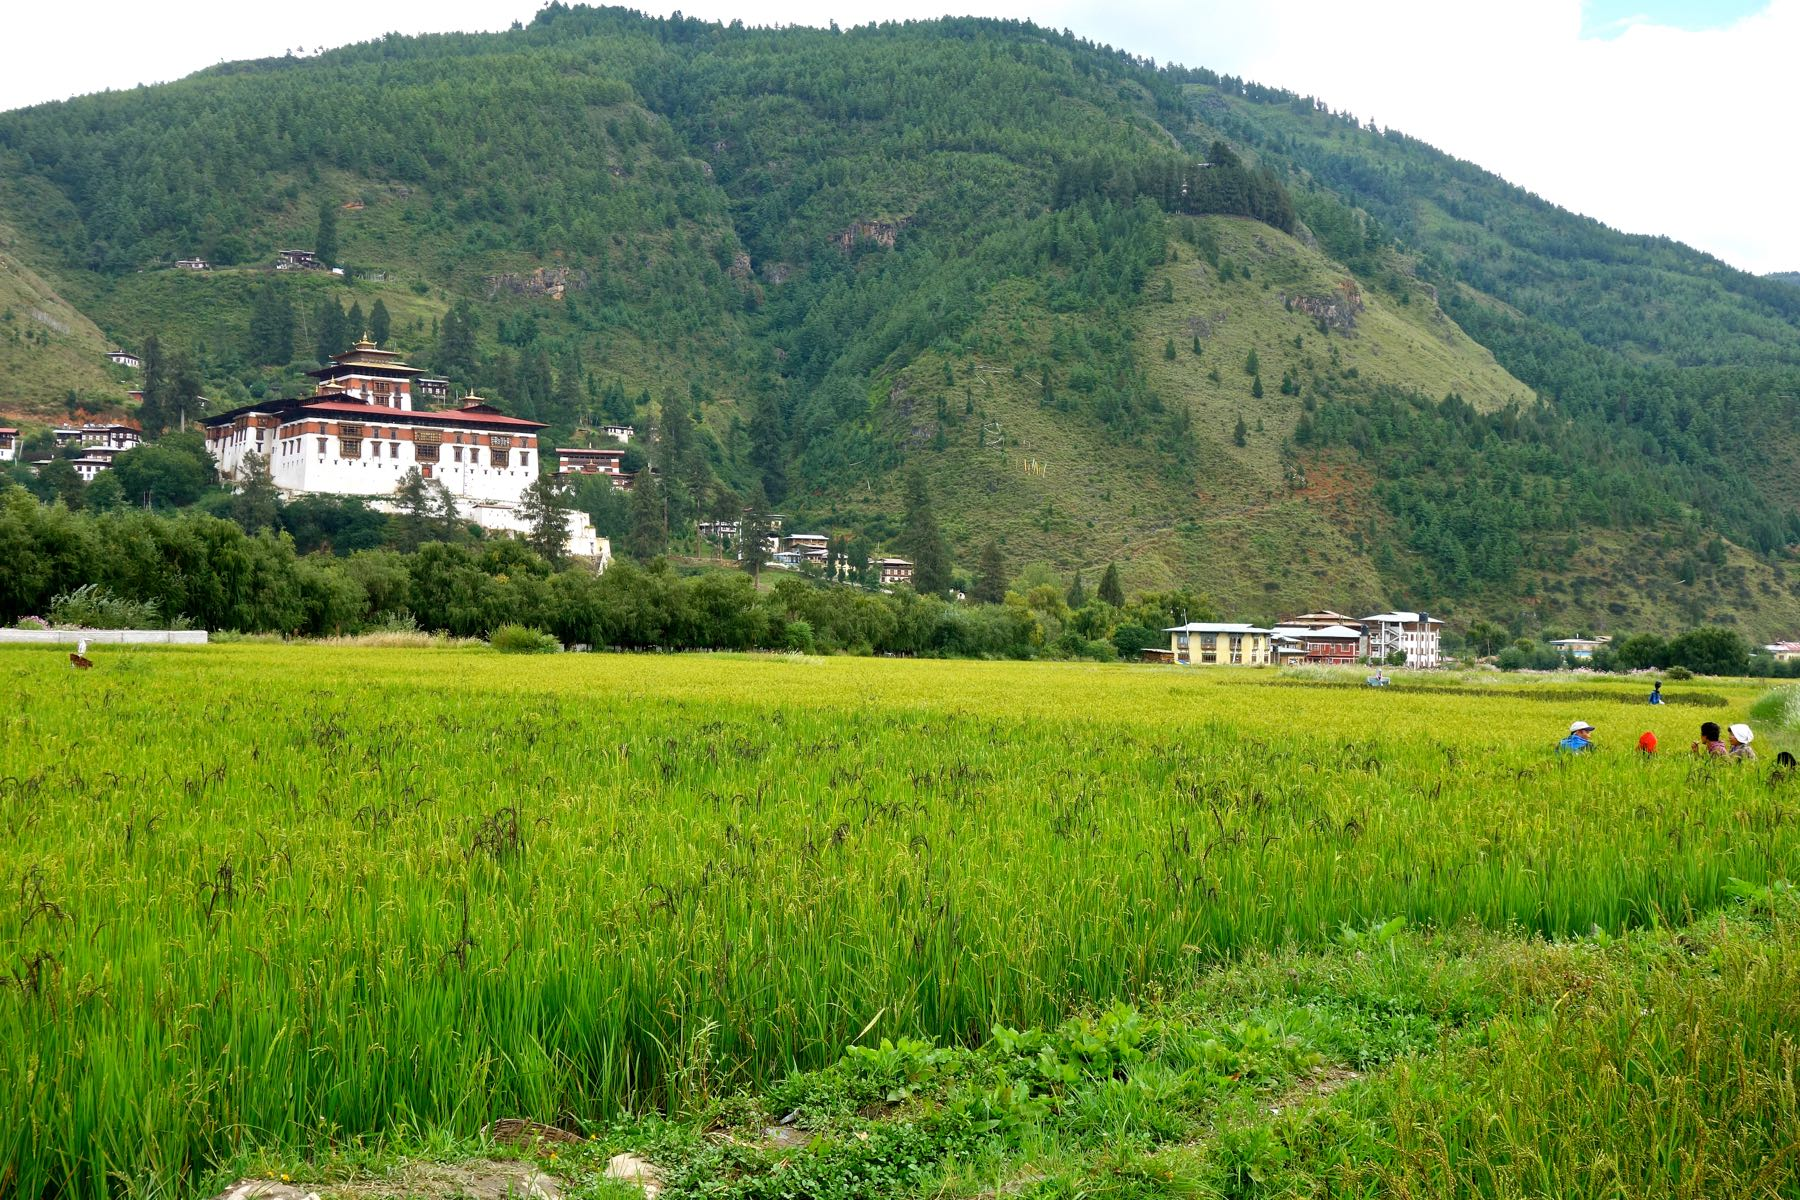 Beautiful Paddy fields in Paro, Bhutan